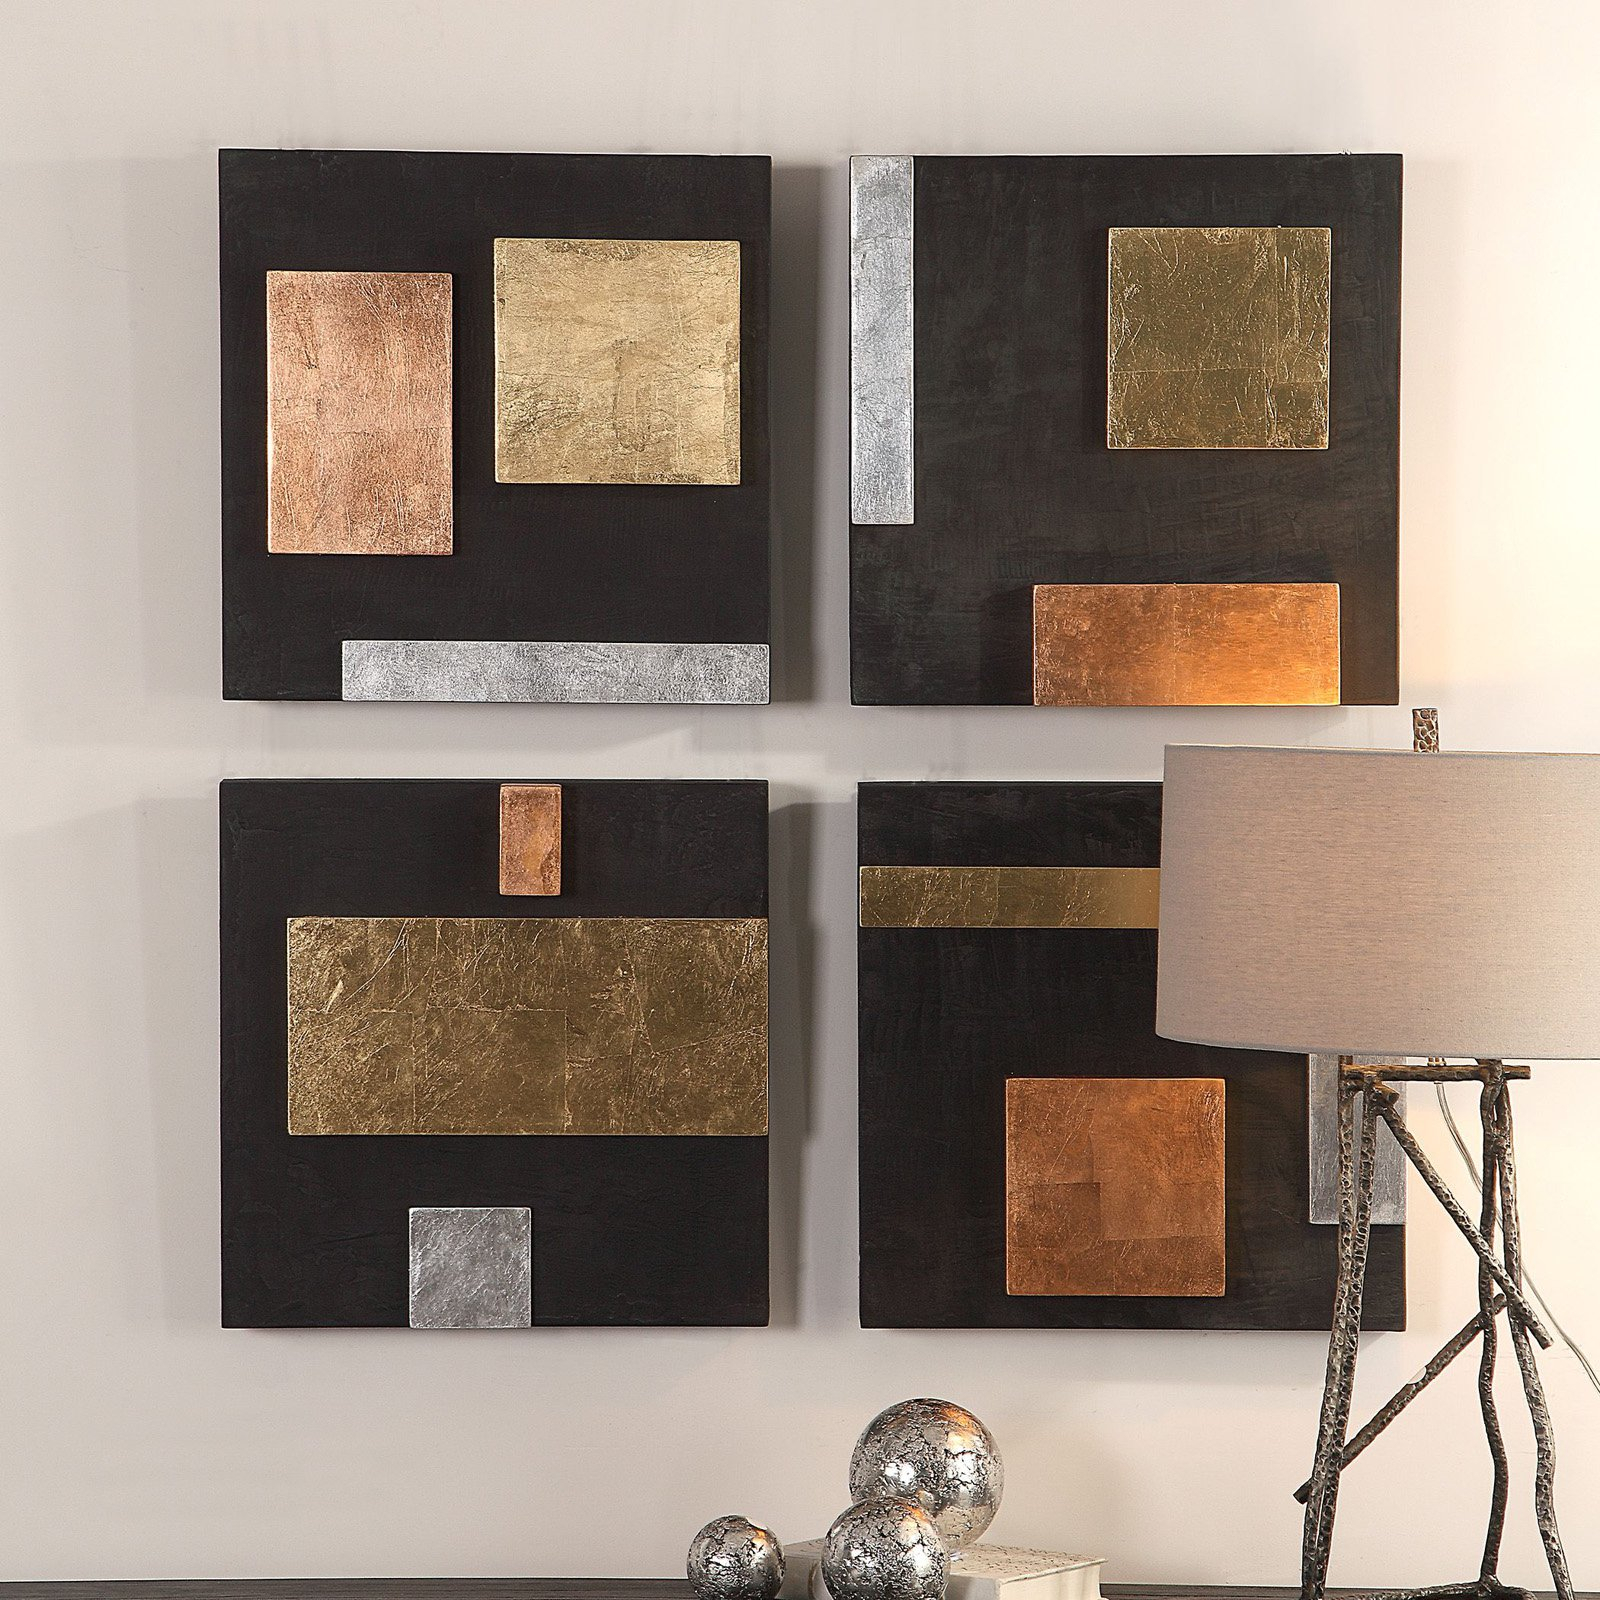 Uttermost Mixed Metals Wall Art – Set Of 4 | Products In Pertaining To 4 Piece Metal Wall Decor Sets (View 16 of 30)